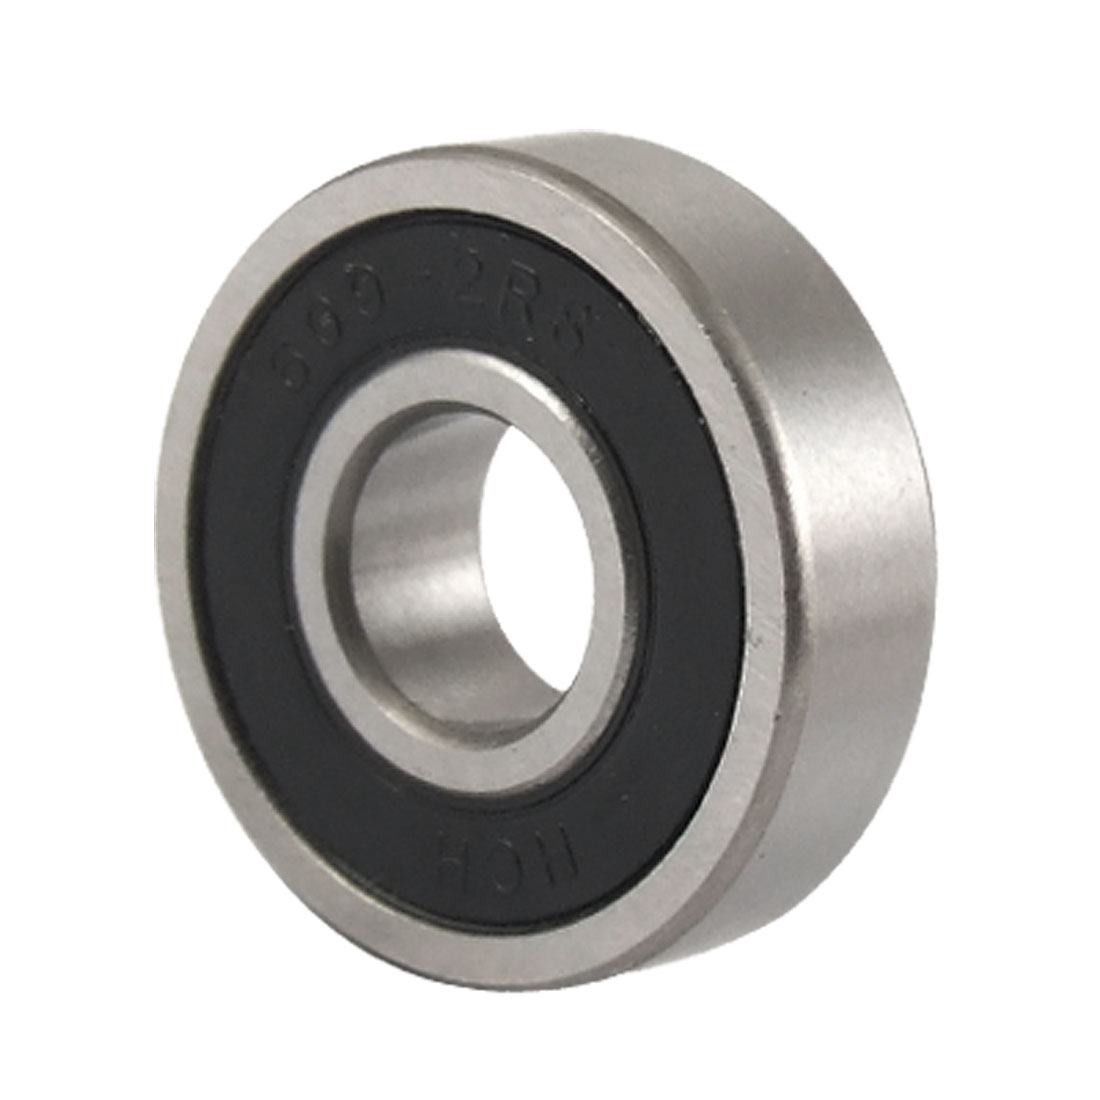 609 2RS Miniature Double Sealed Bearing 9 x 24 x 7mm